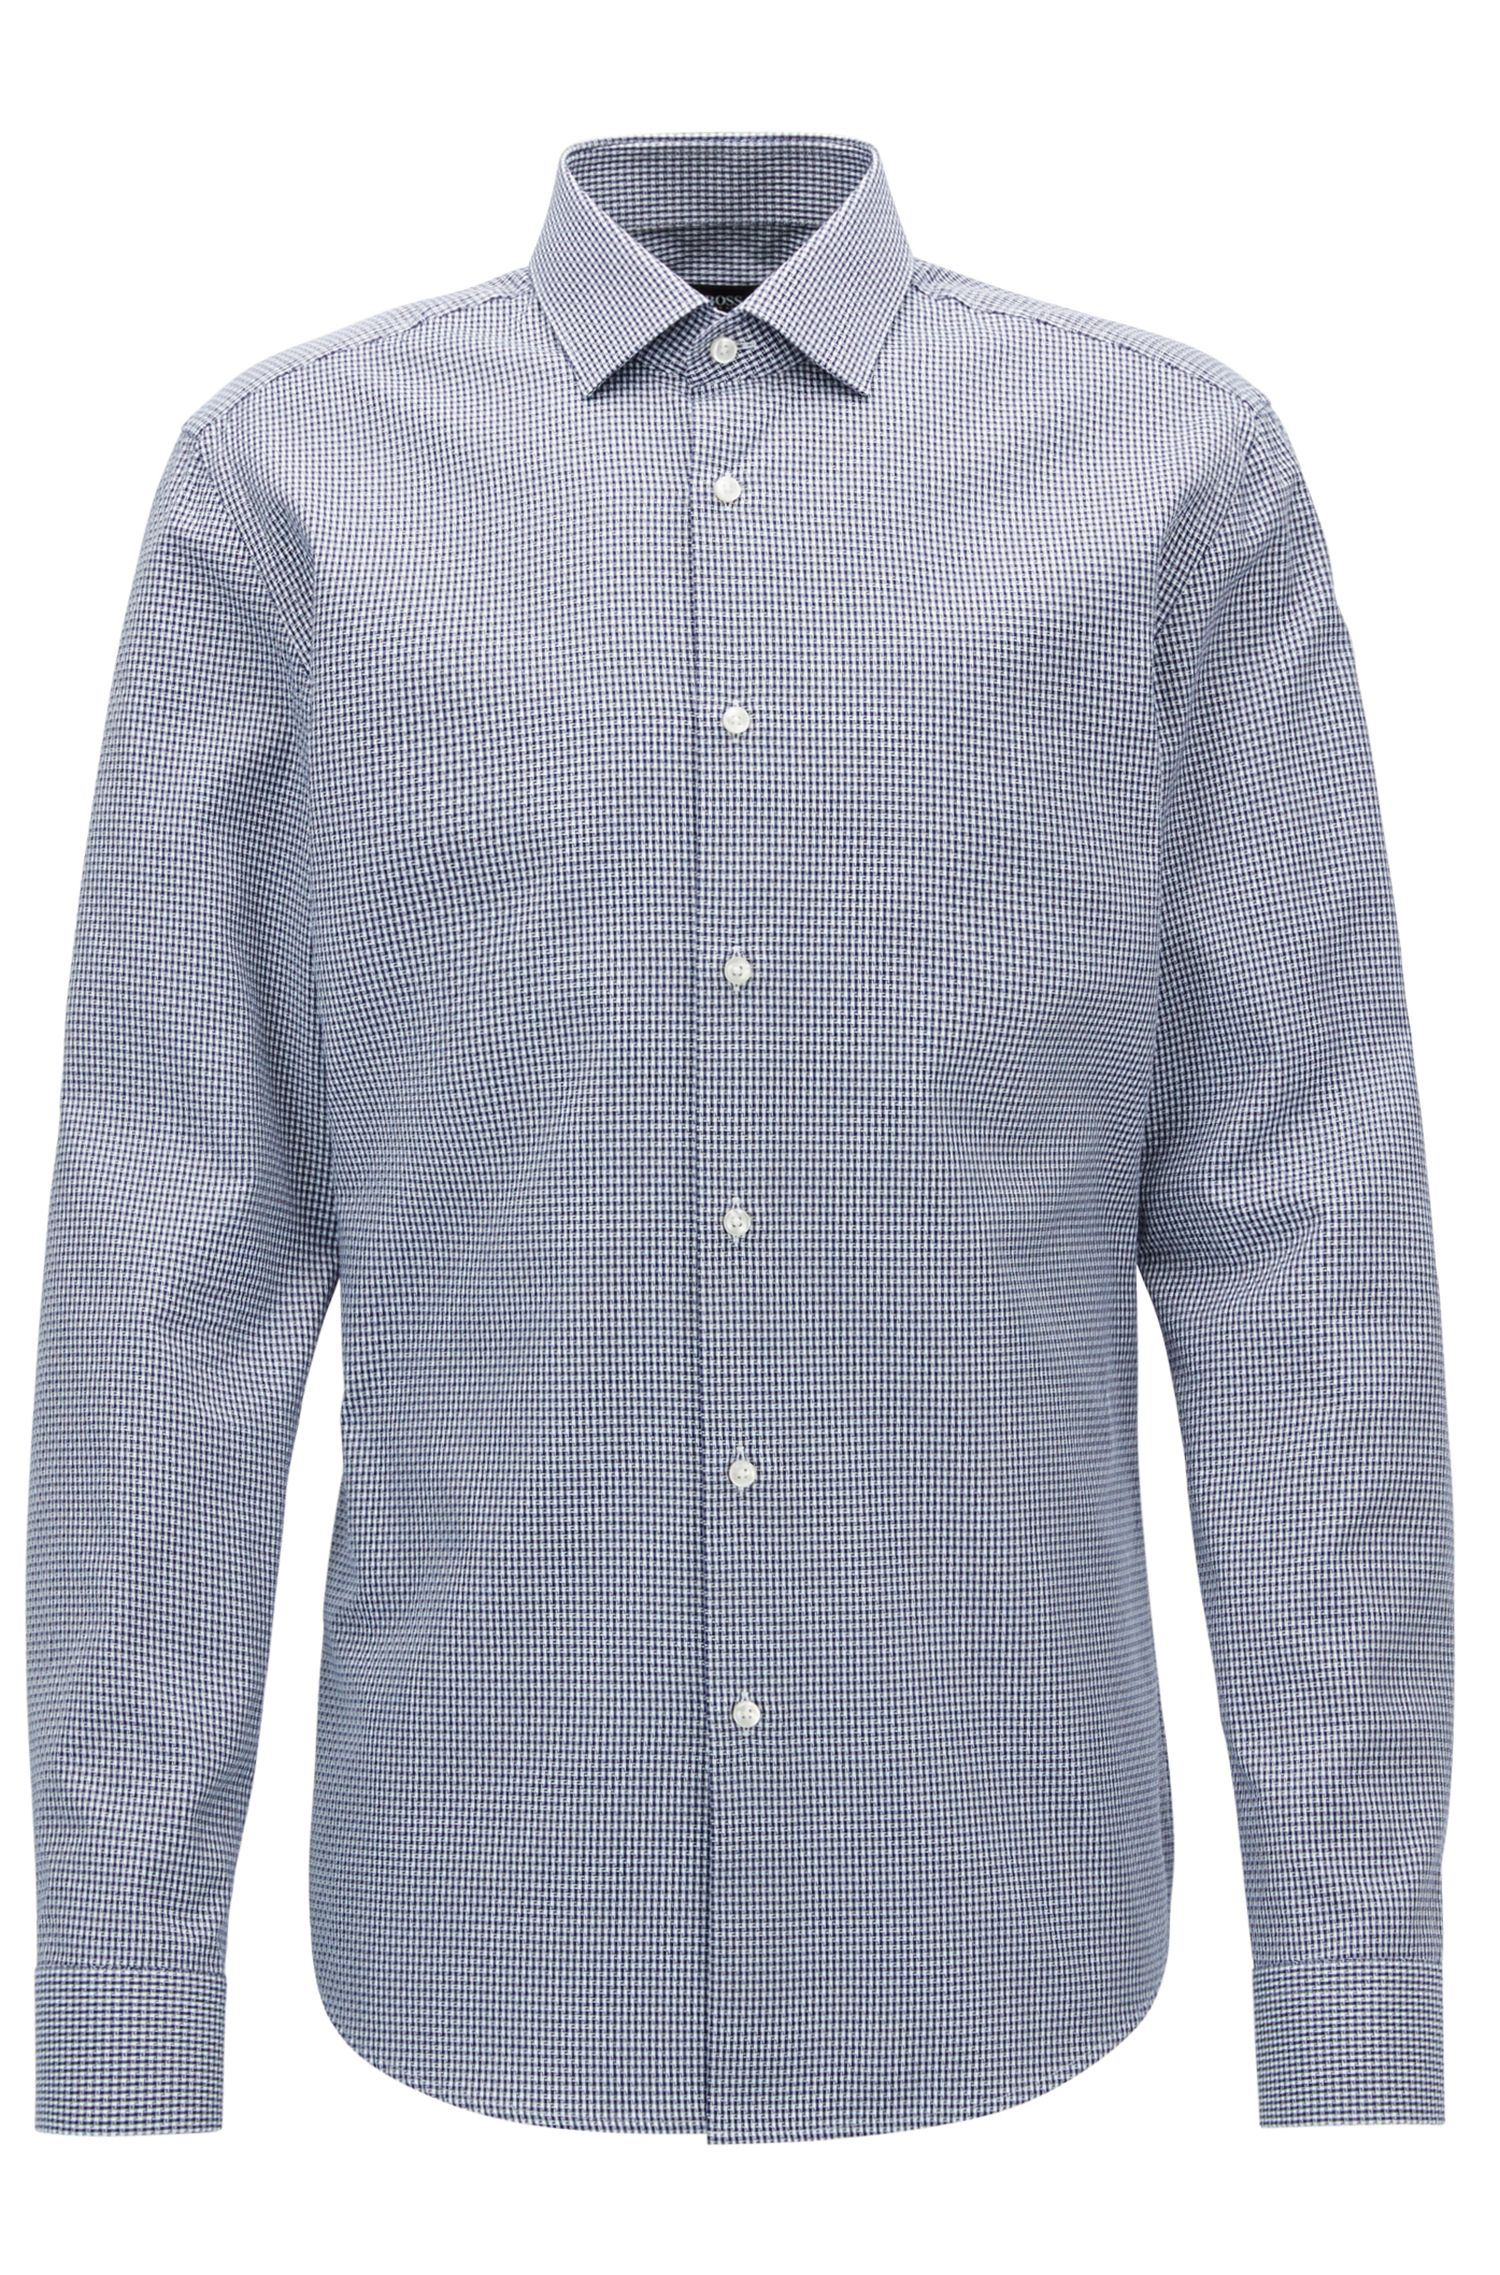 Checked Cotton Dress Shirt, Slim Fit | Ismo